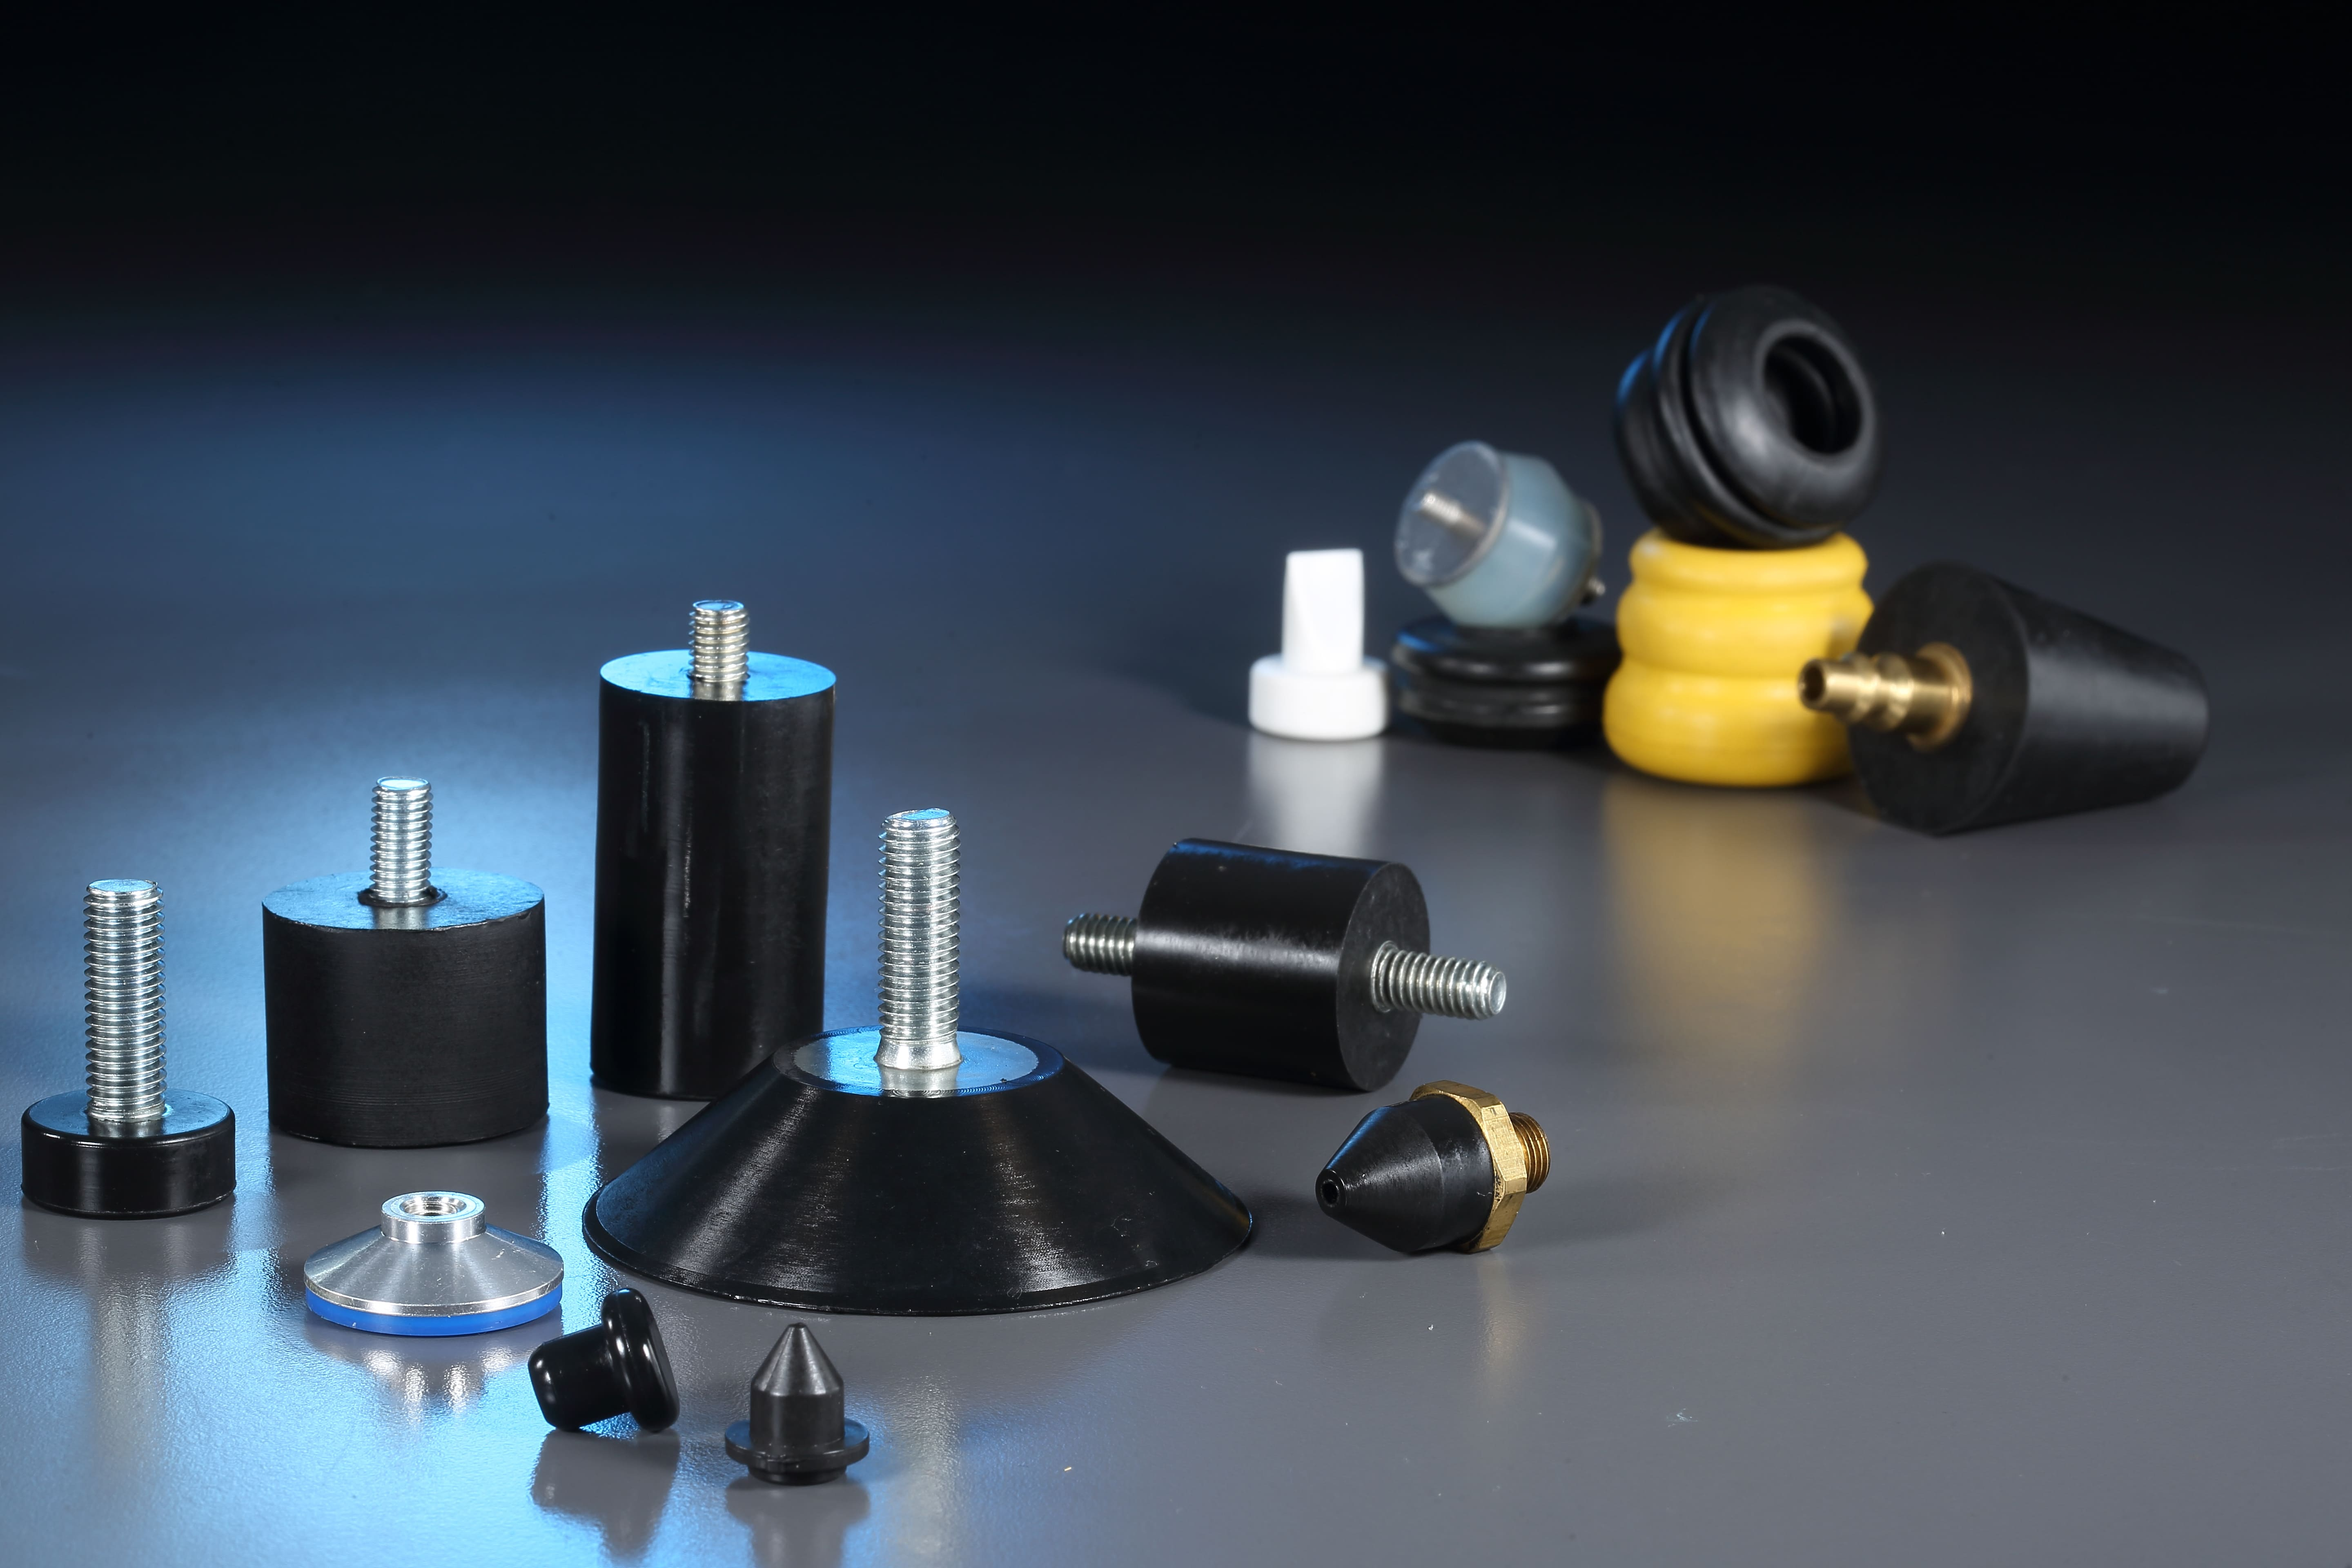 Agricultural / Tractor Anti-Vibration rubber,spigot,nozzle for Rubber, Plastic Parts made by Yee Ming Ying Co., LTD. 昱銘穎有限公司 - MatchSupplier.com